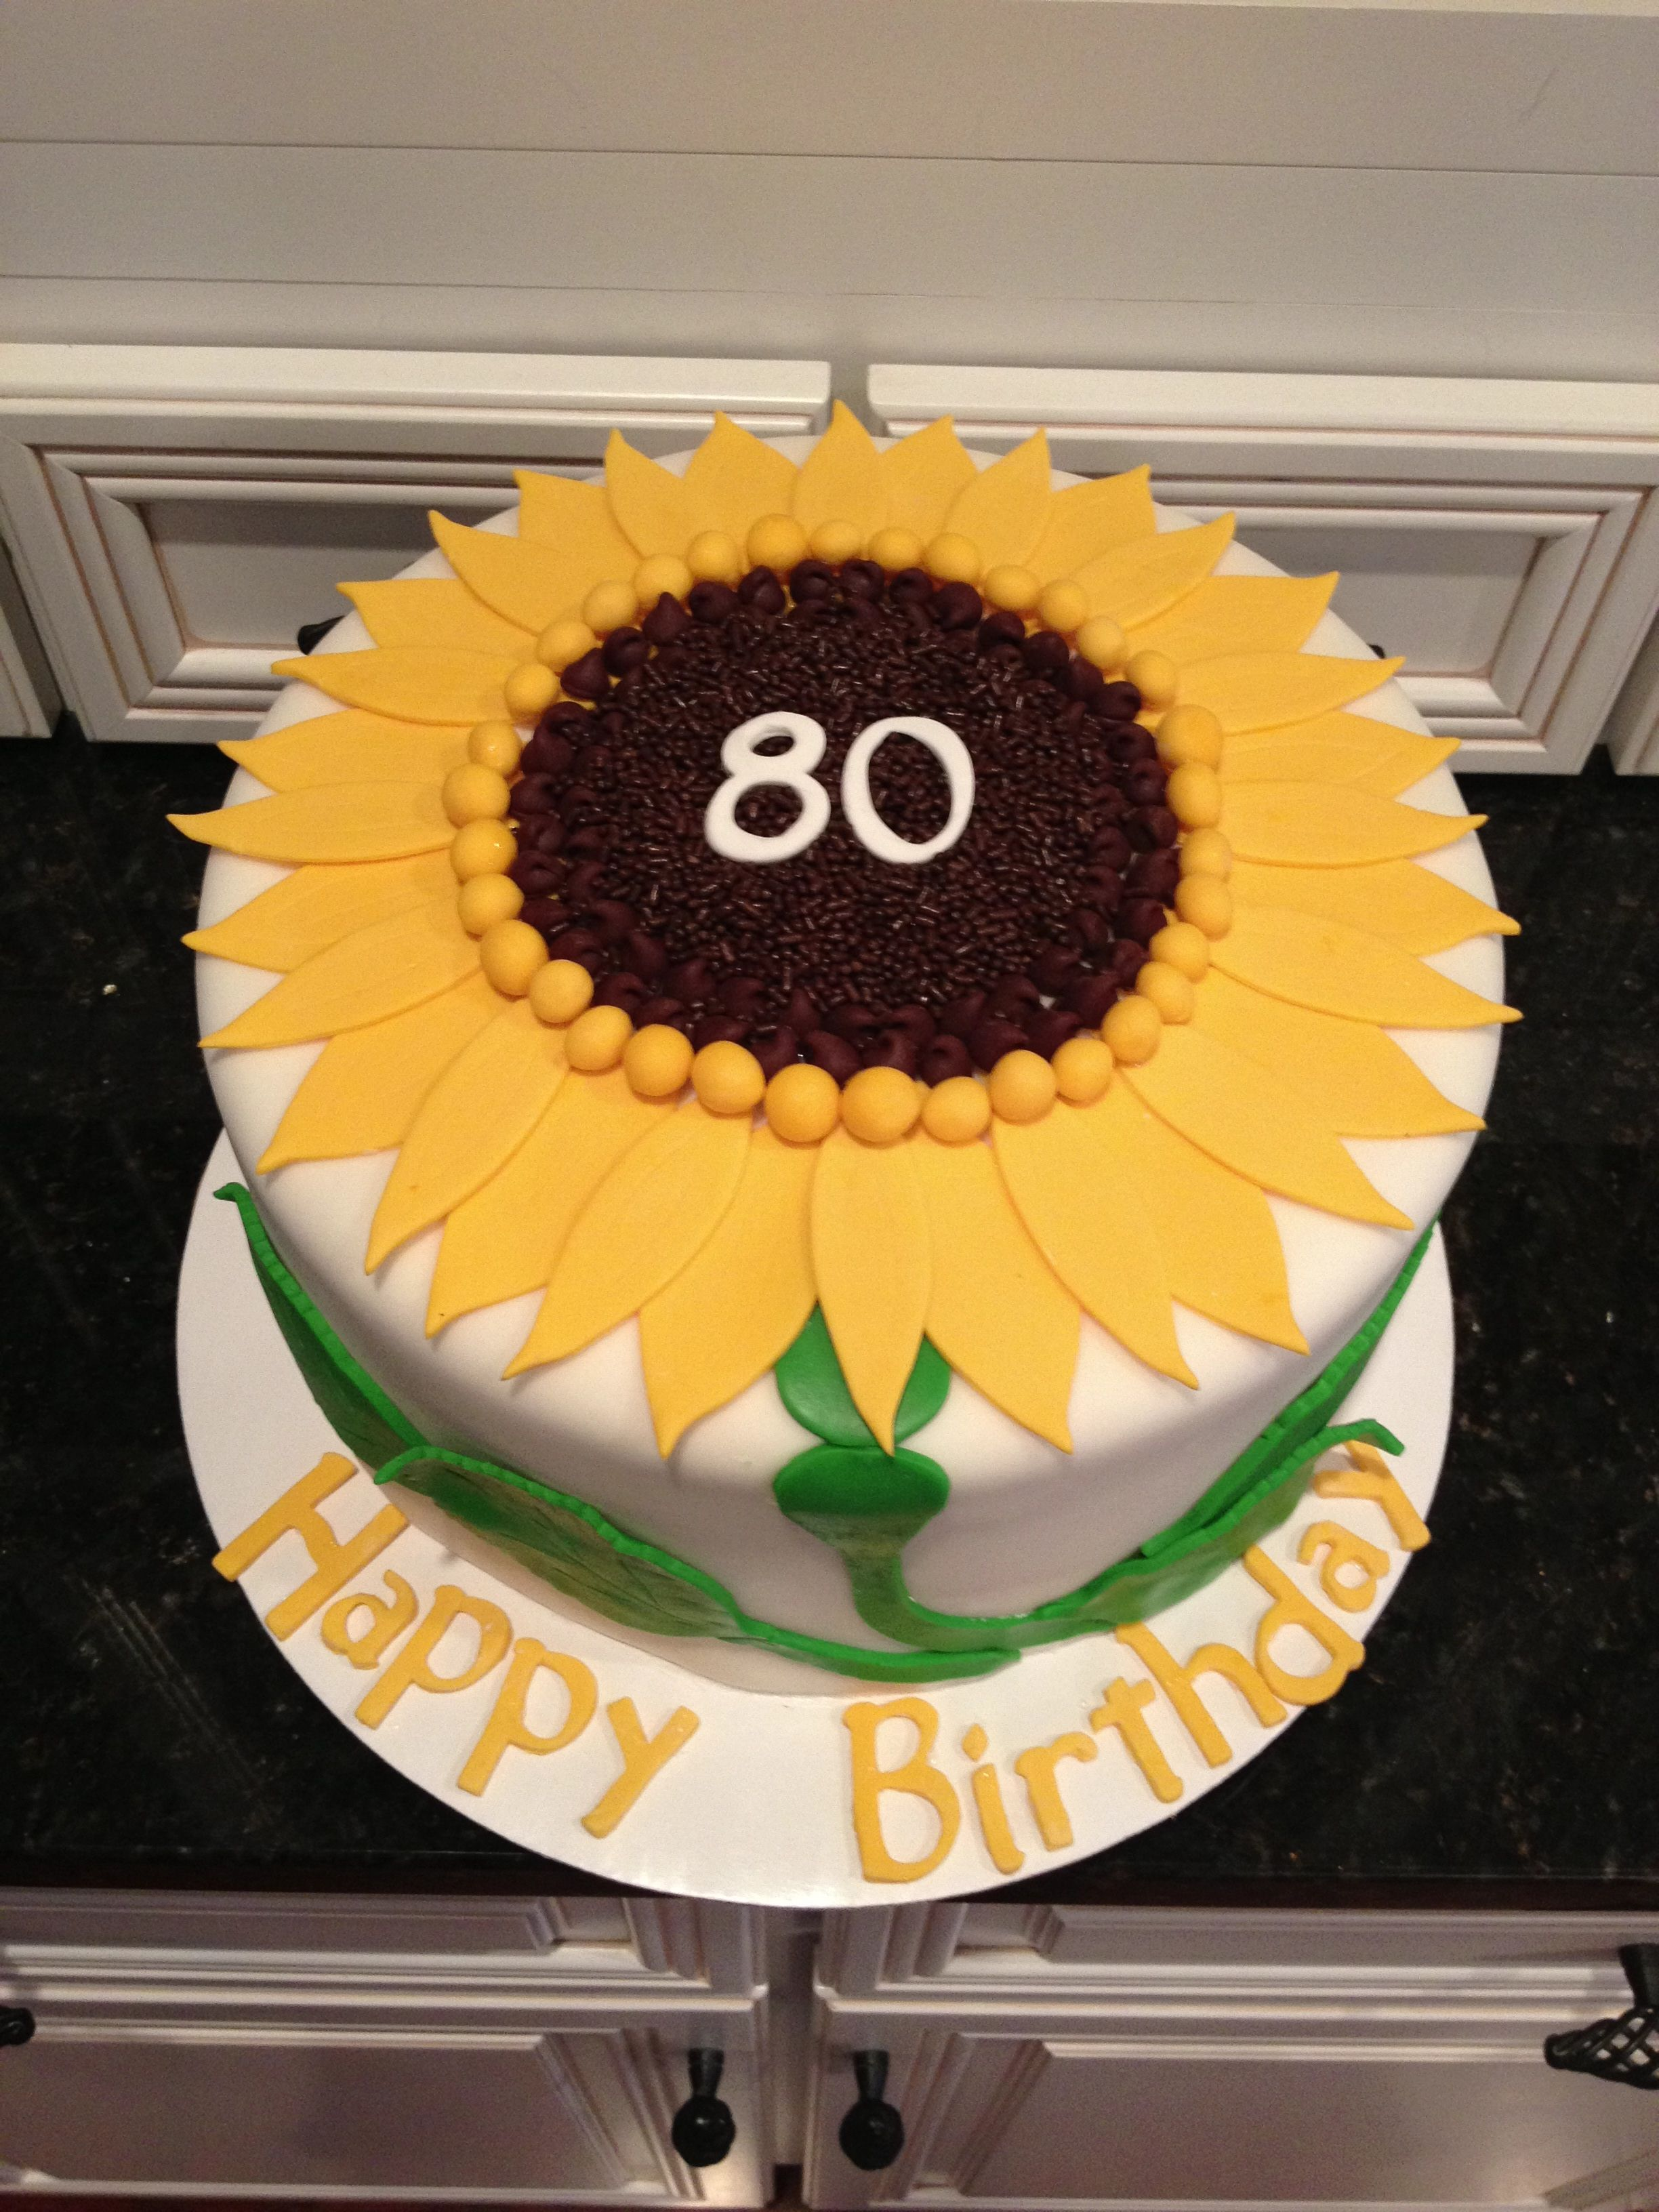 Sunflower Birthday Cake For 80 Year Old Birthday Party Cakes